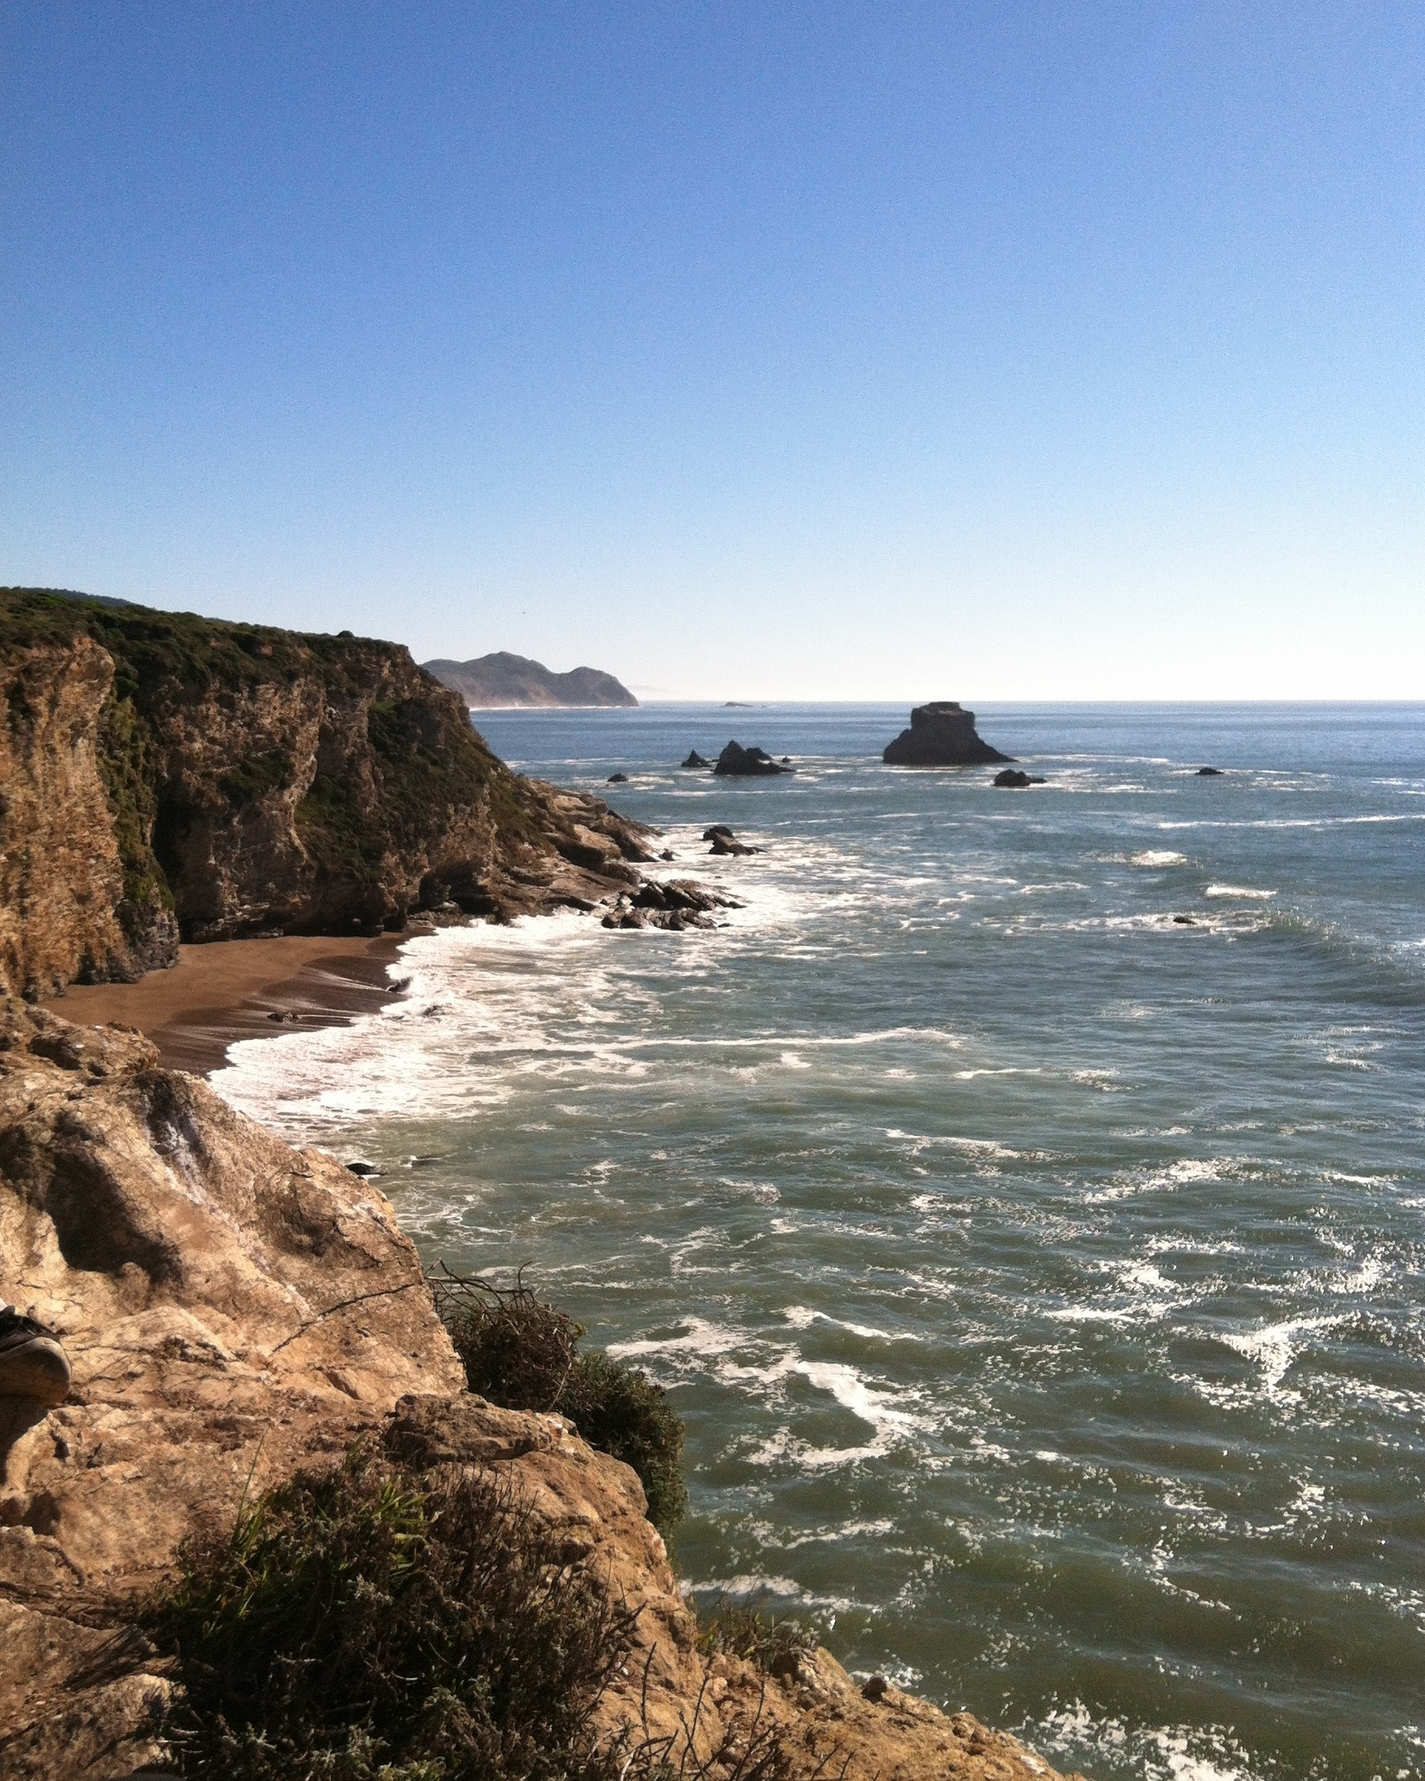 View from Arch Rock, Point Reyes National Seashore